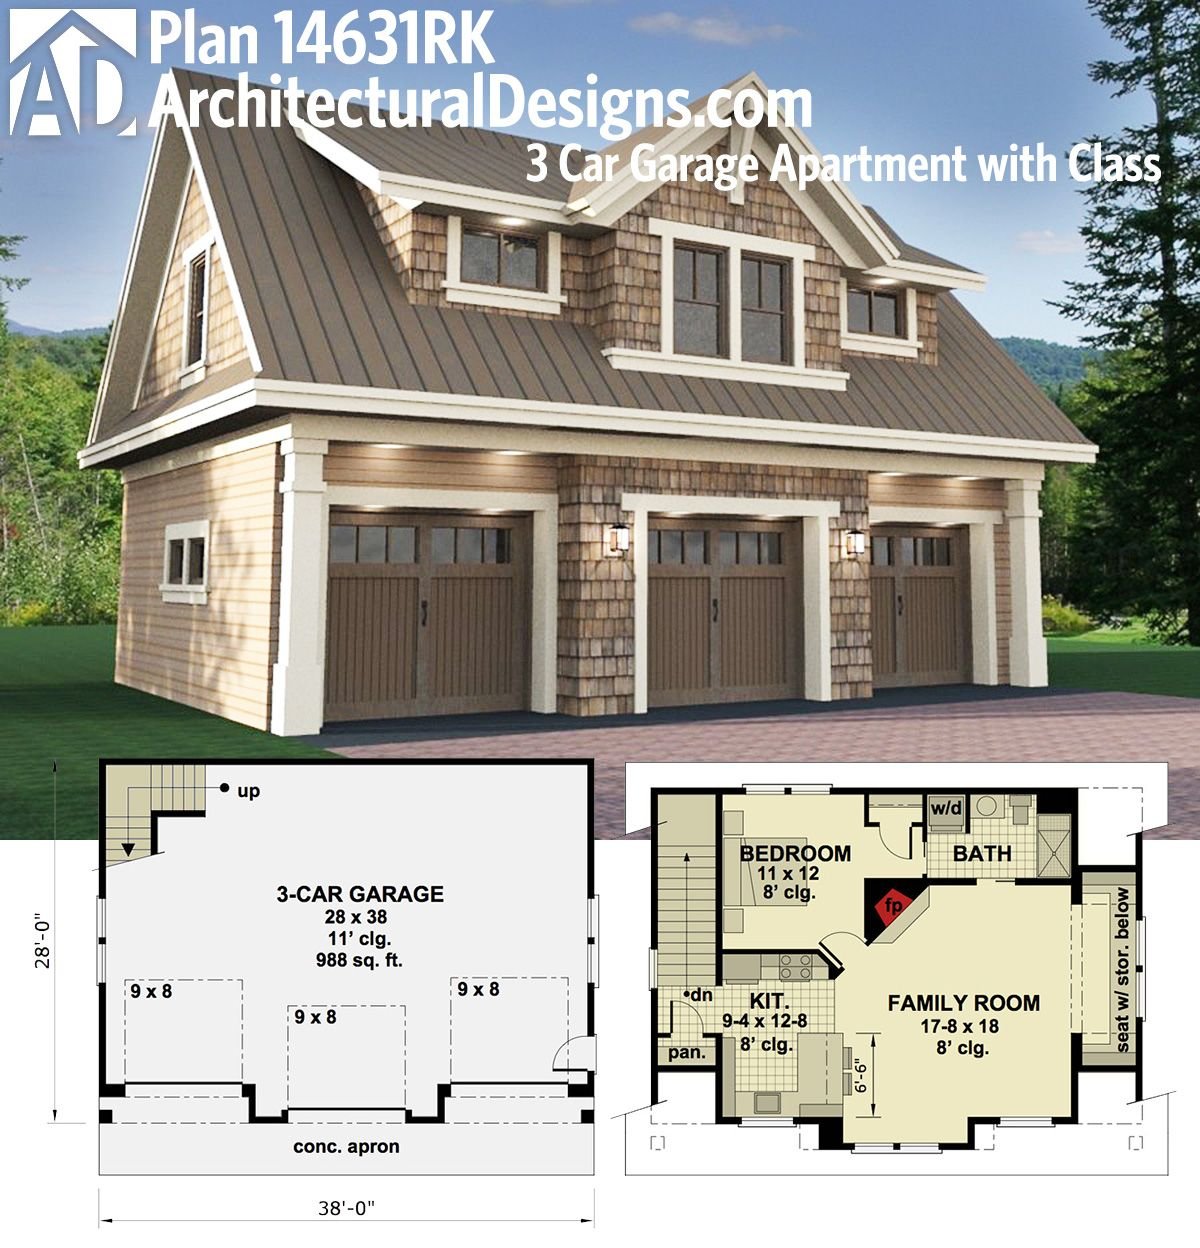 Plan 14631rk 3 Car Garage Apartment With Class Carriage House Plans Carriage House And